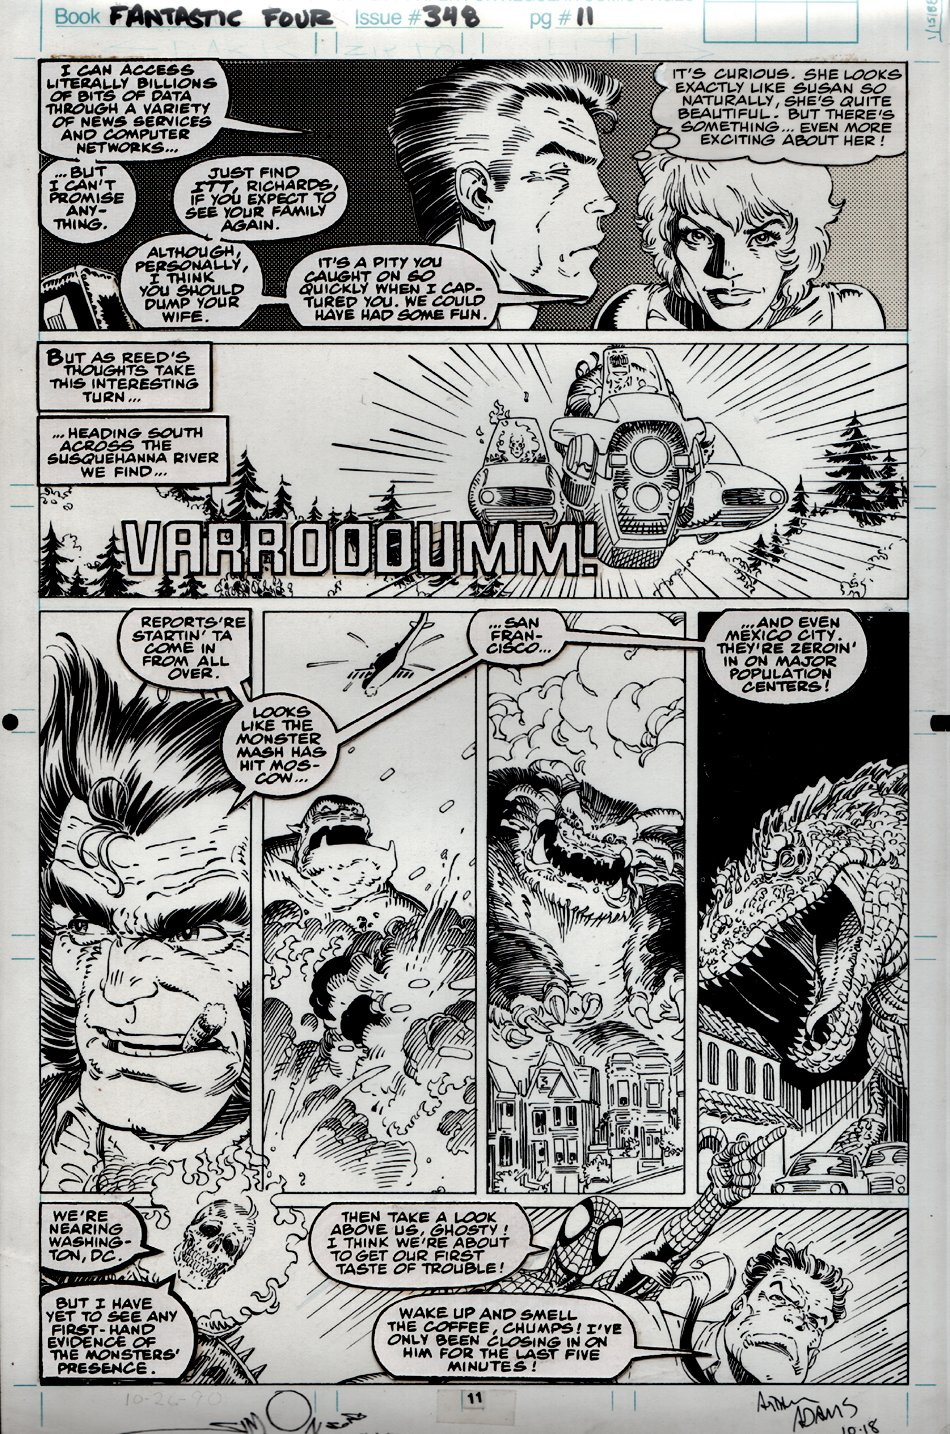 Fantastic Four #348 p 11 (Signed By Adams And Simonson. Great Simonson THING Drawing On Back) 1990